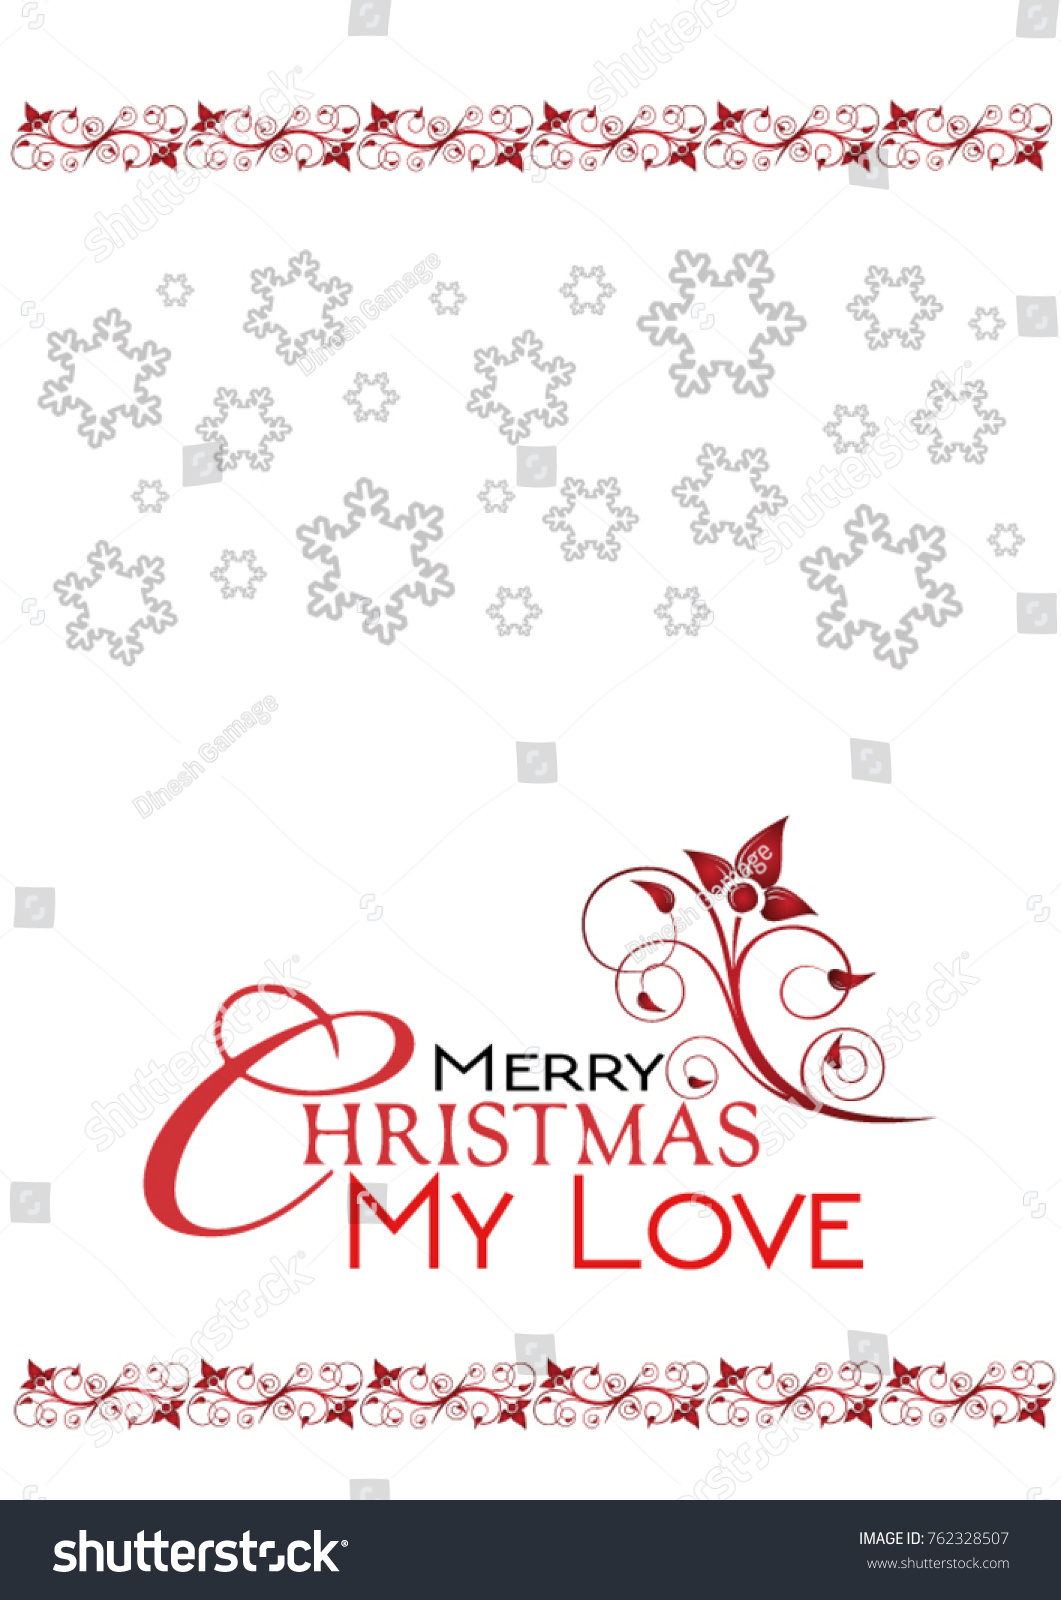 Merry Christmas My Love Greetings Card Stock Vector Royalty Free